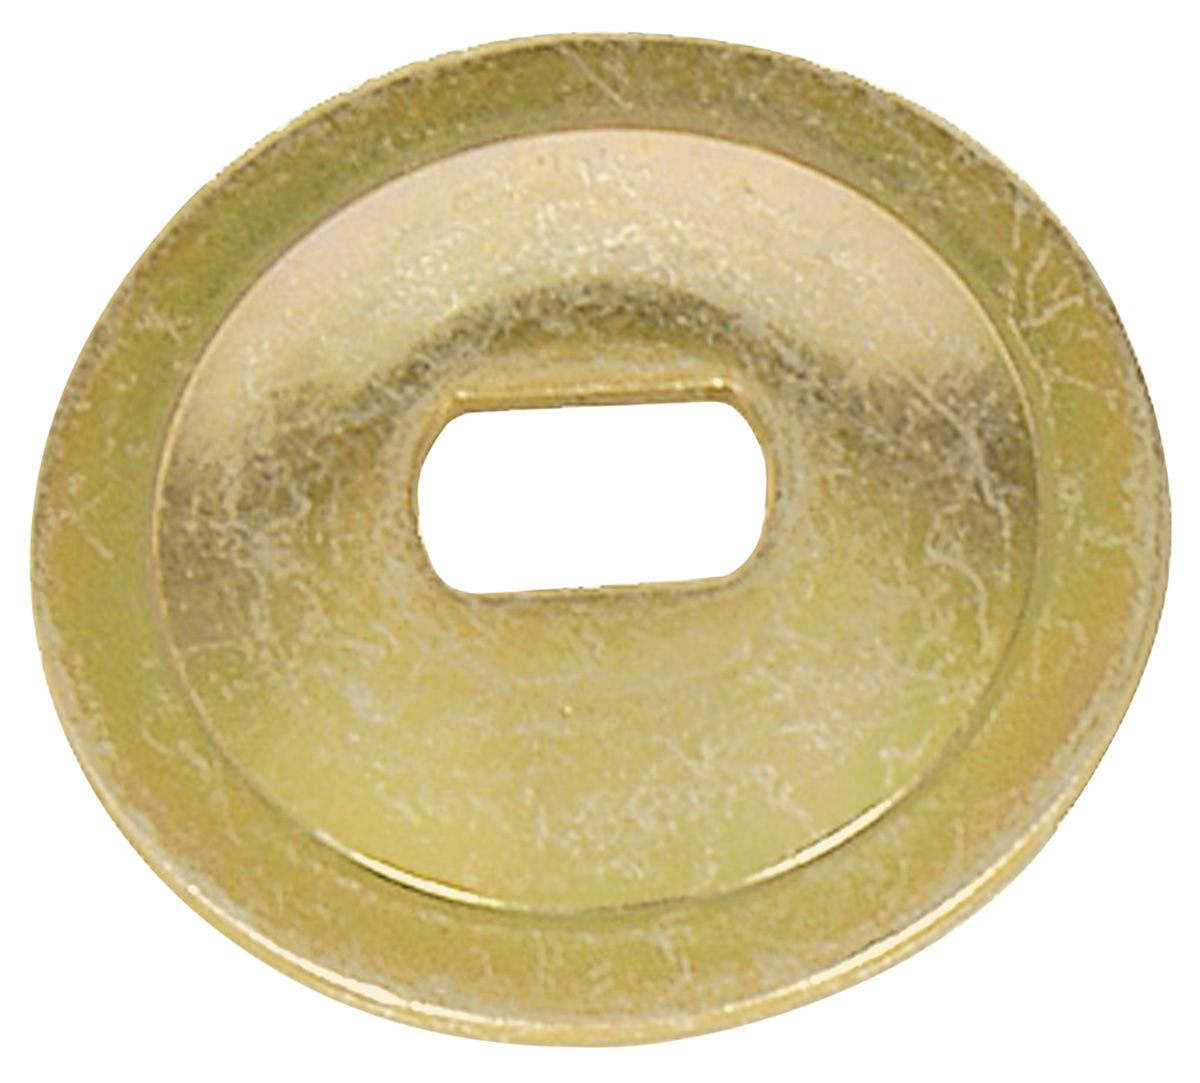 """Photo of Window Guide Roller Backing Washer (15/16"""" RD, 1-3/8"""" OD)"""